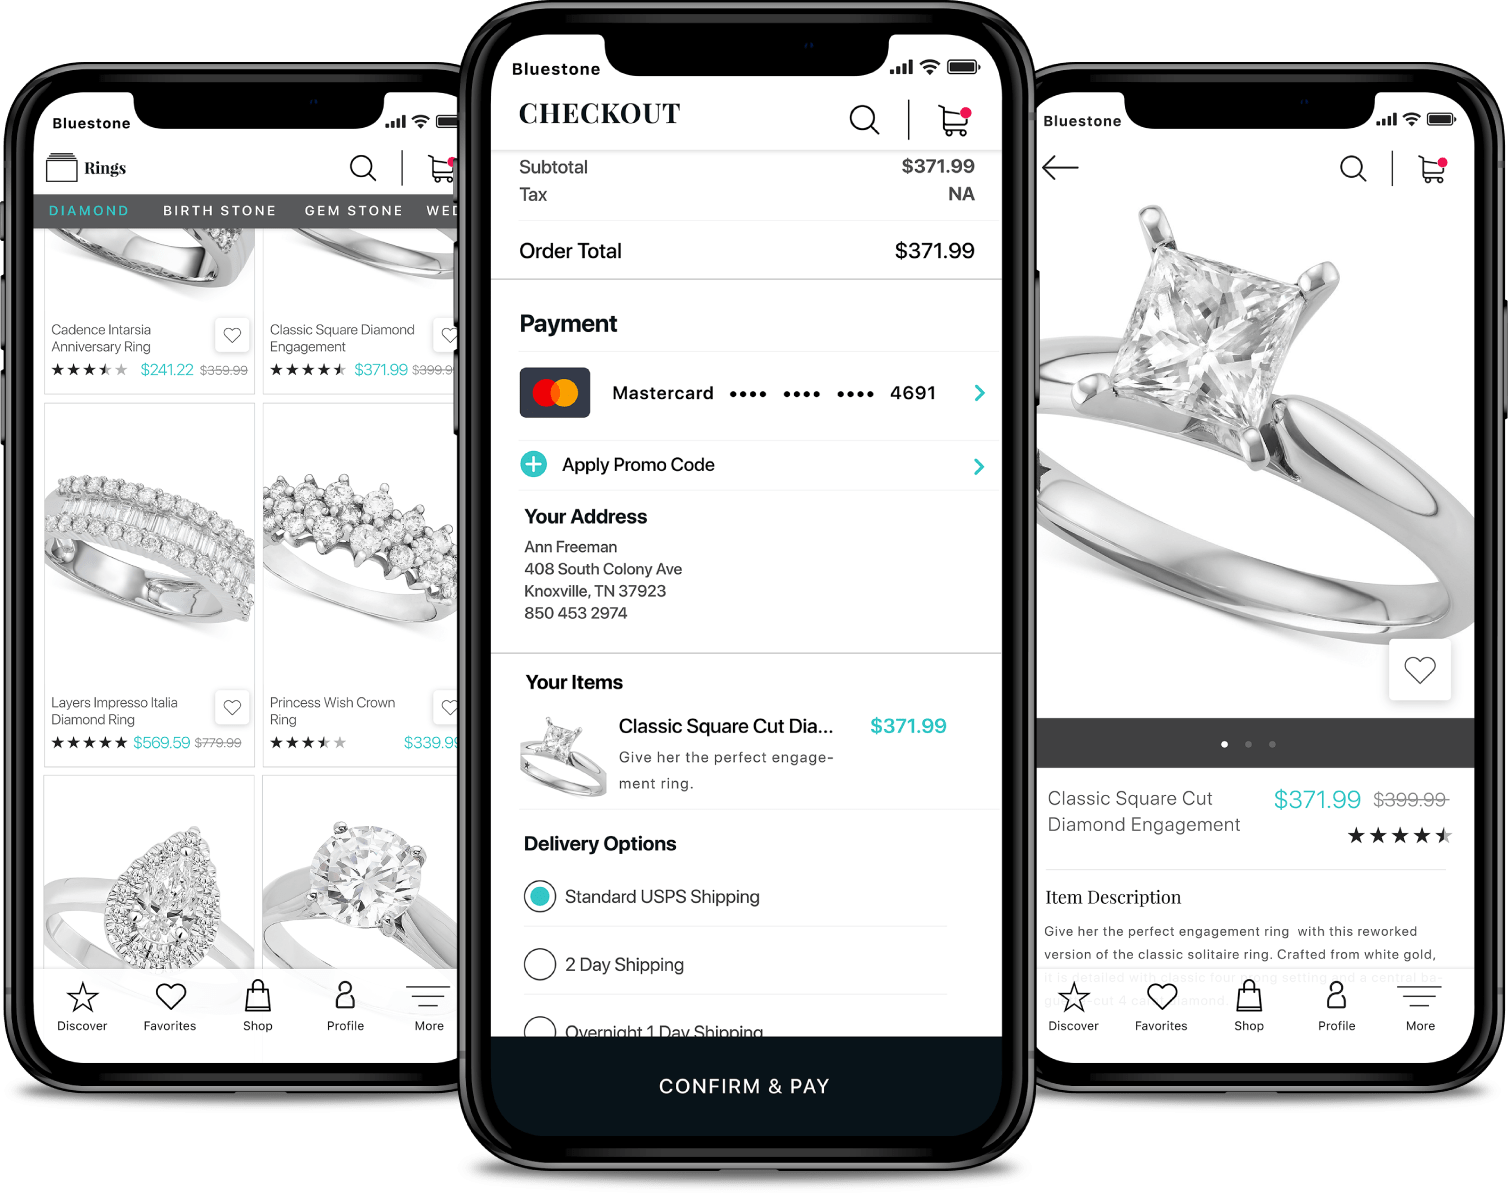 jewelery-store-app-jewelery-checkout-product-category-and-product-details-app-screens